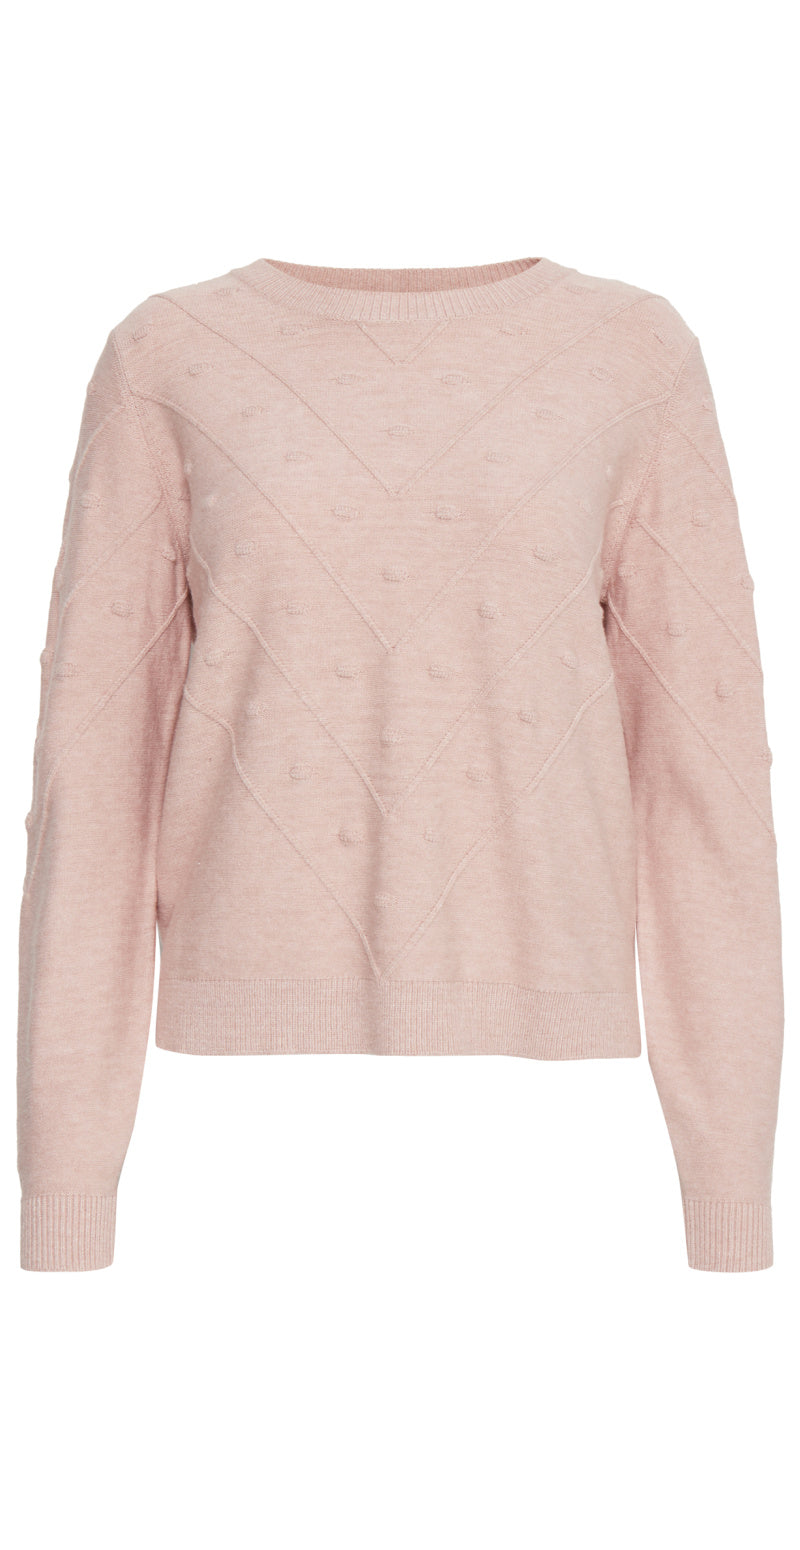 Warm rose strik med bomber